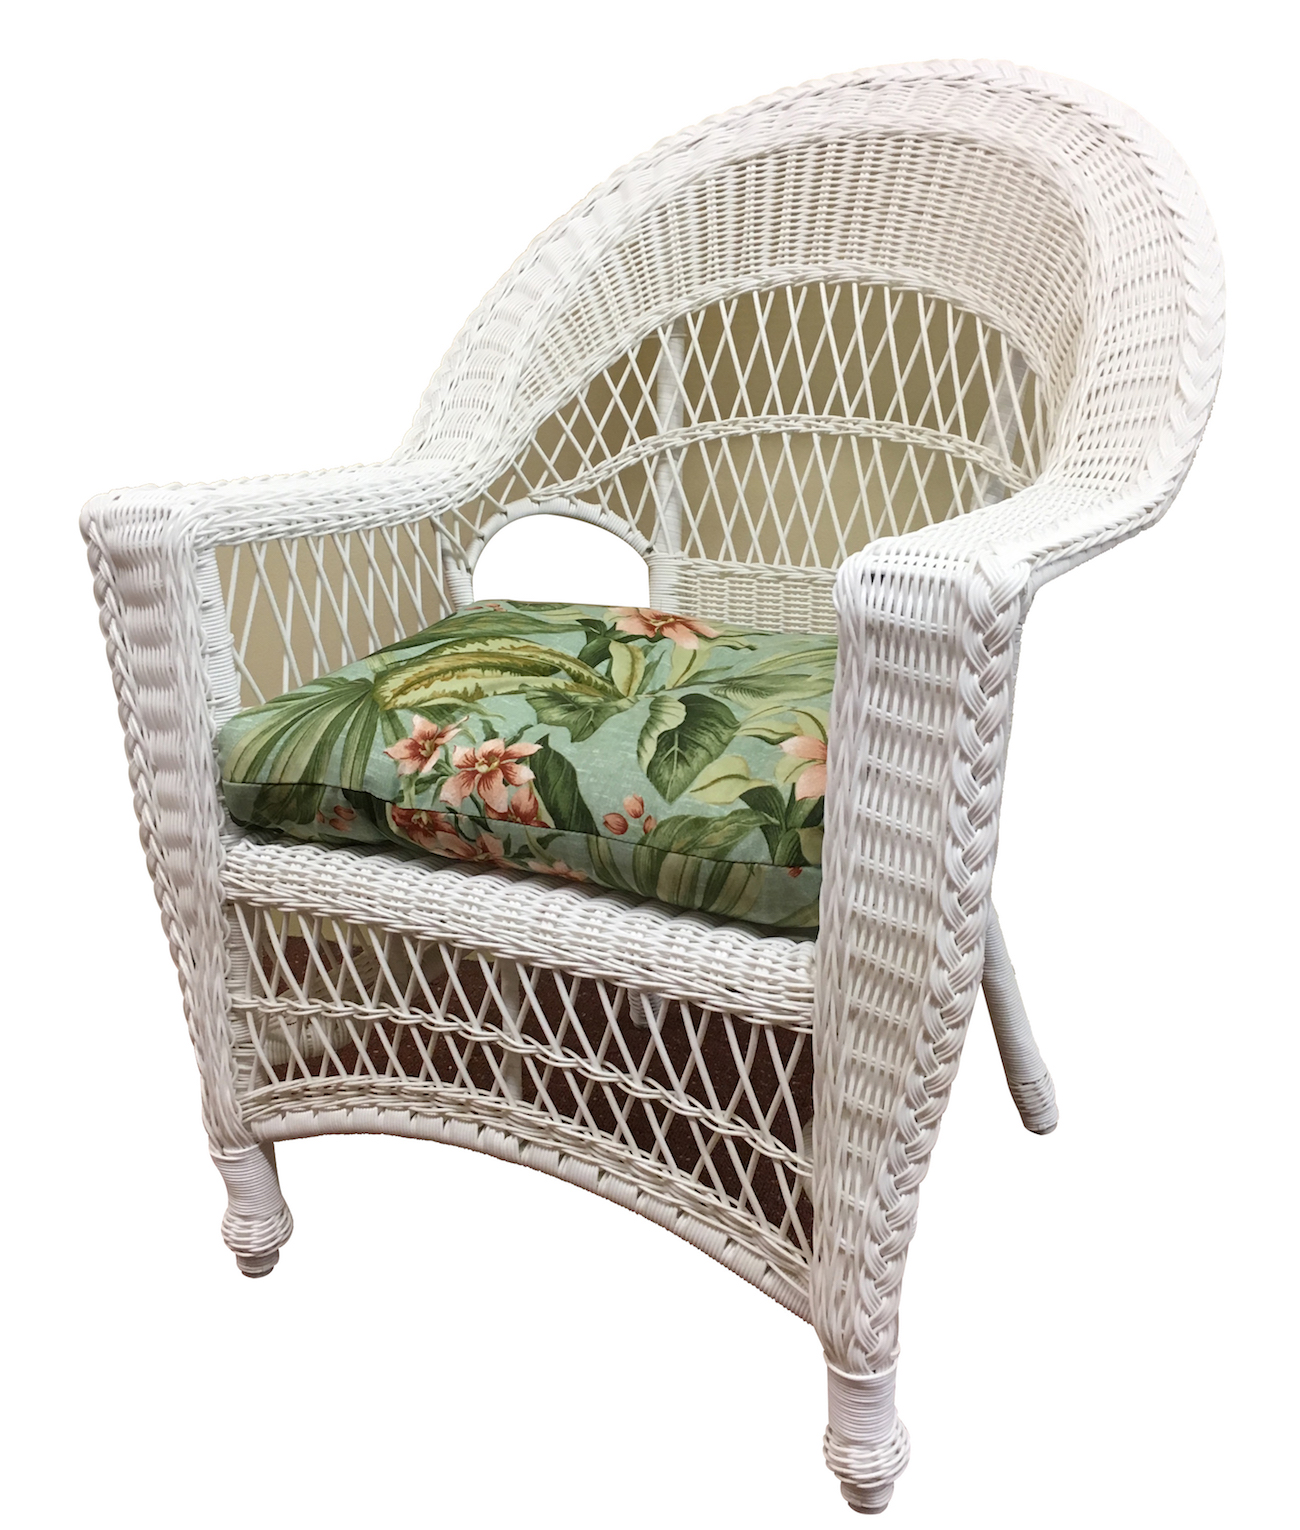 Wicker Patio Chair Outdoor Wicker Chair Cape Cod